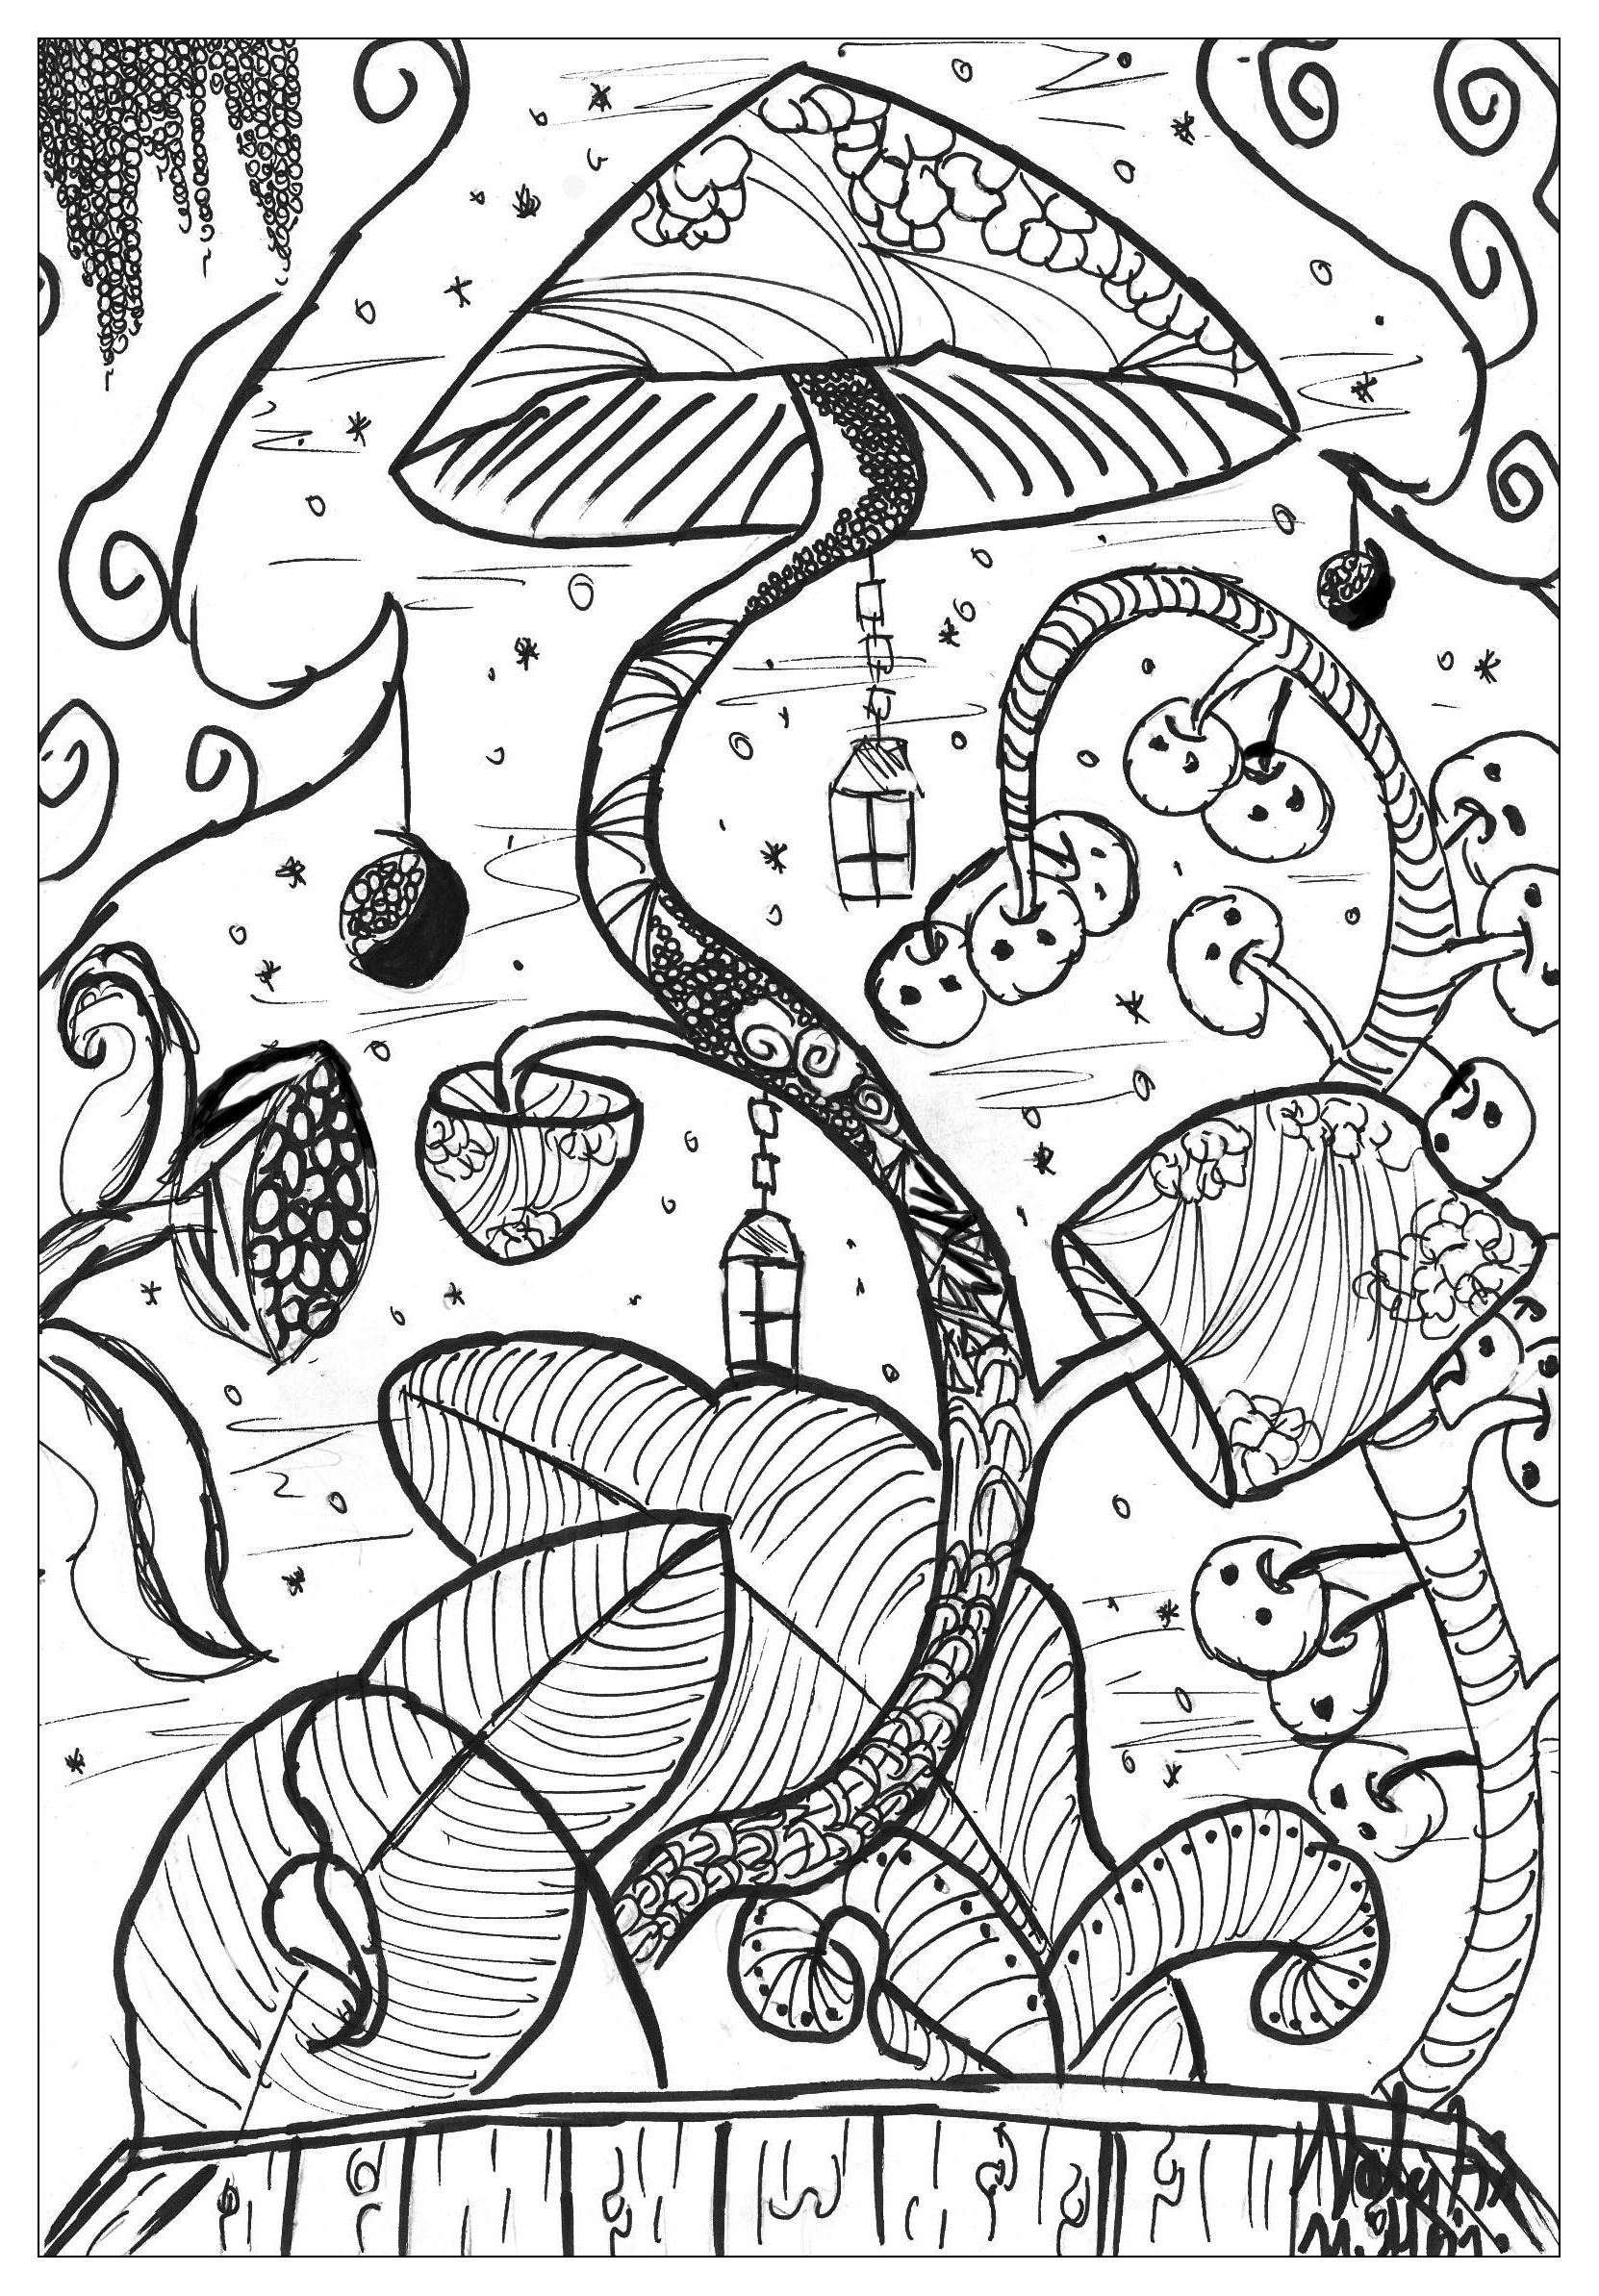 mushroom coloring pages Mushroom valentin   Flowers Adult Coloring Pages mushroom coloring pages